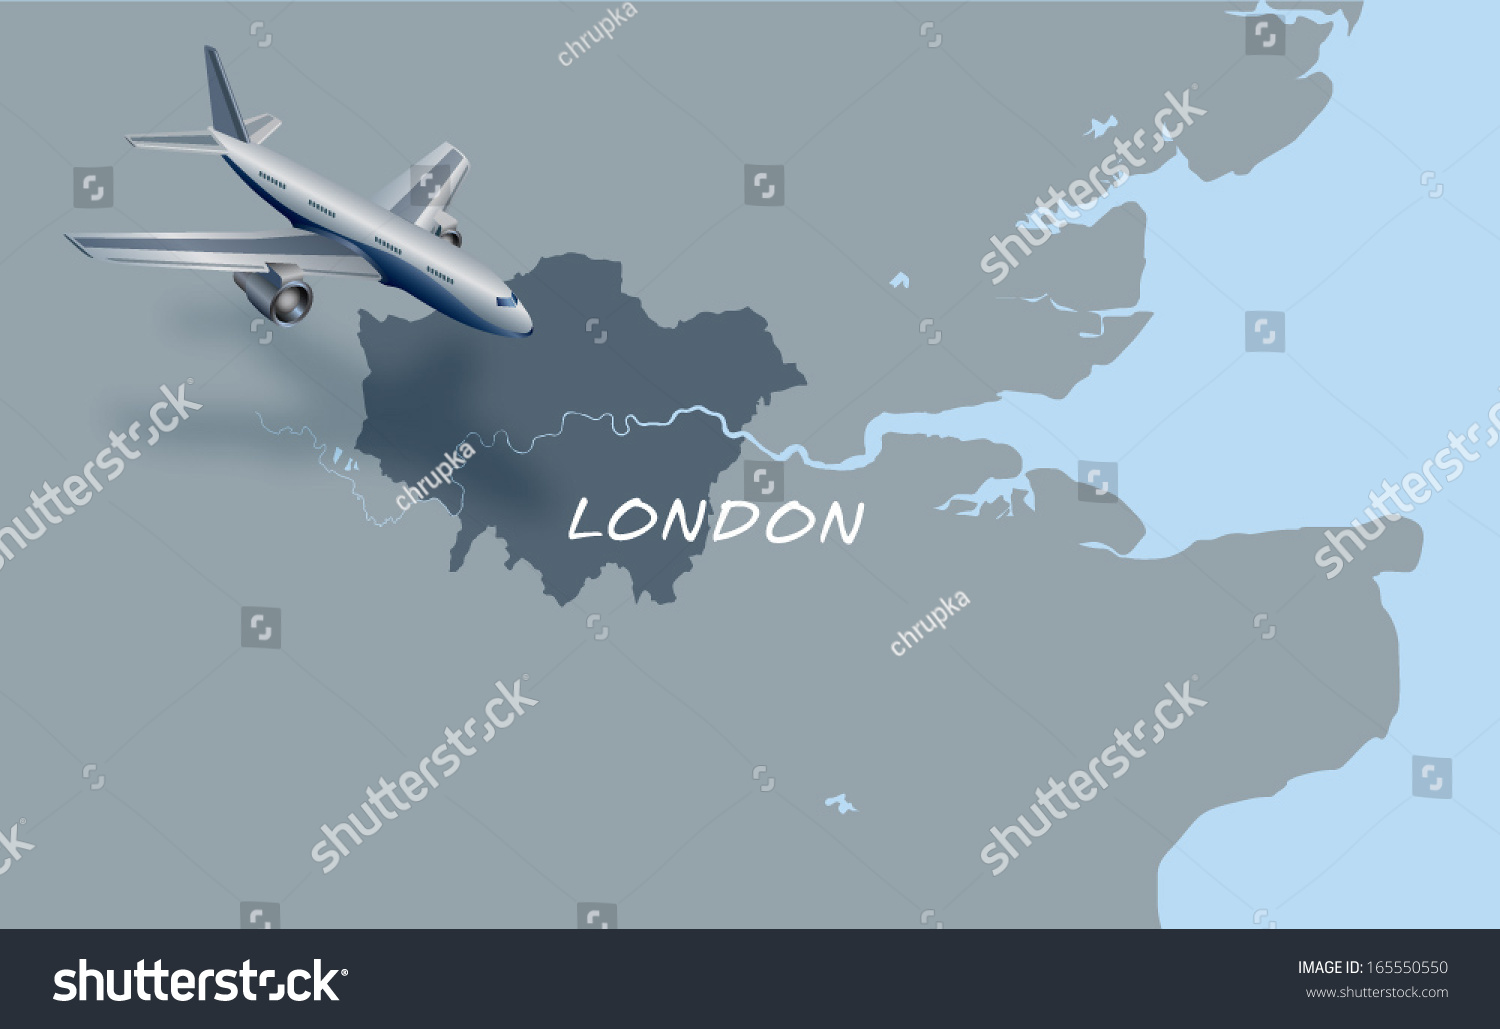 Map Over London.Jet Plane Flying Over Map London Stock Vector Royalty Free 165550550